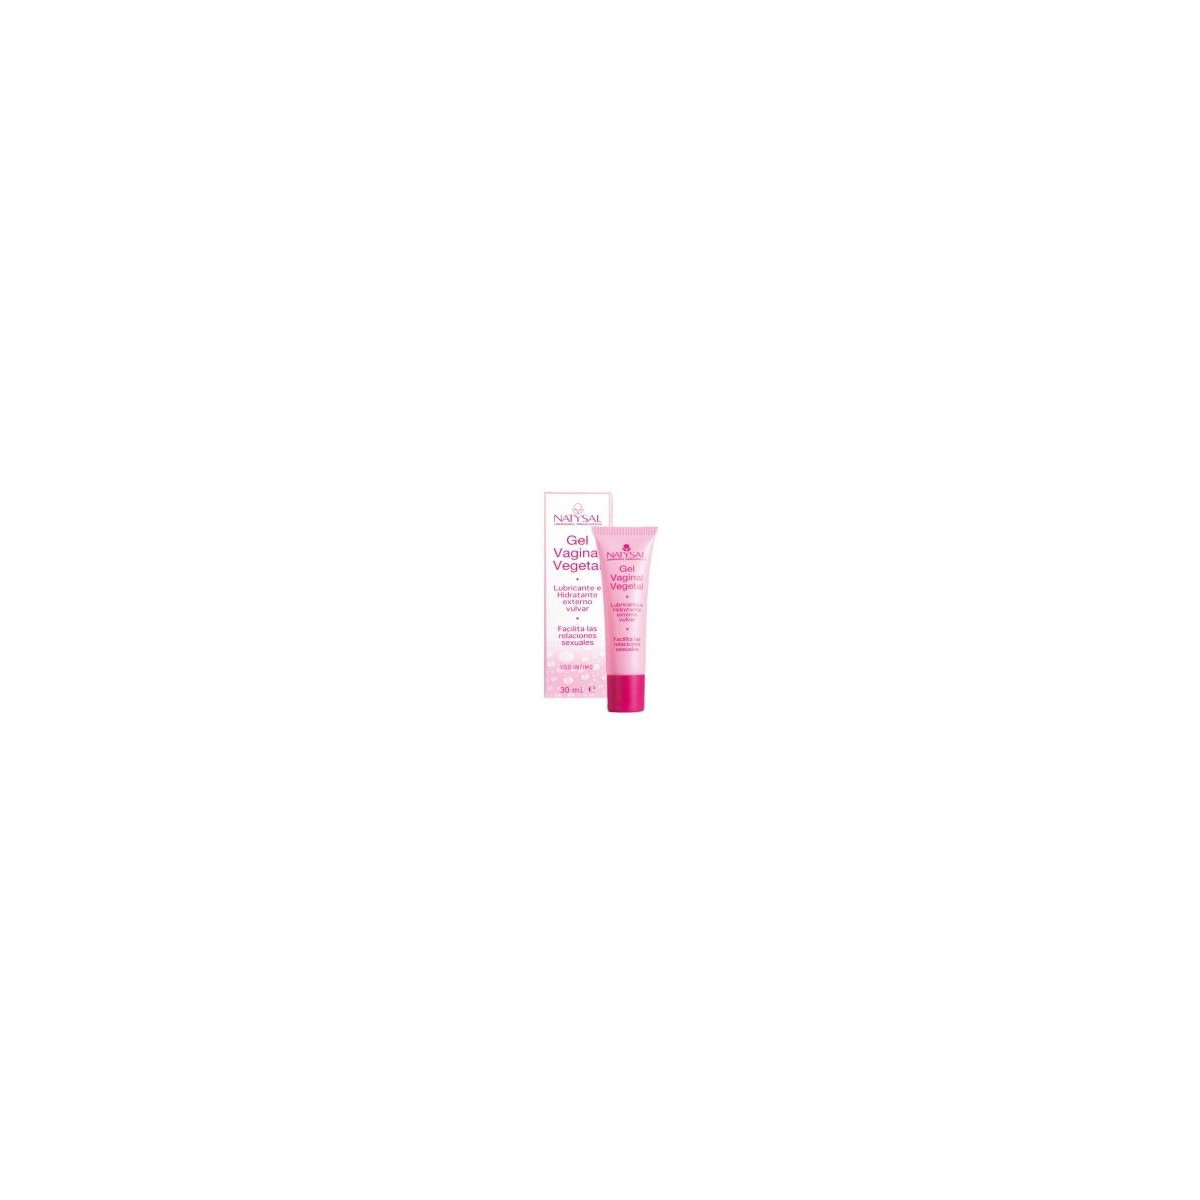 Gel Vaginal Vegetal 50 ml